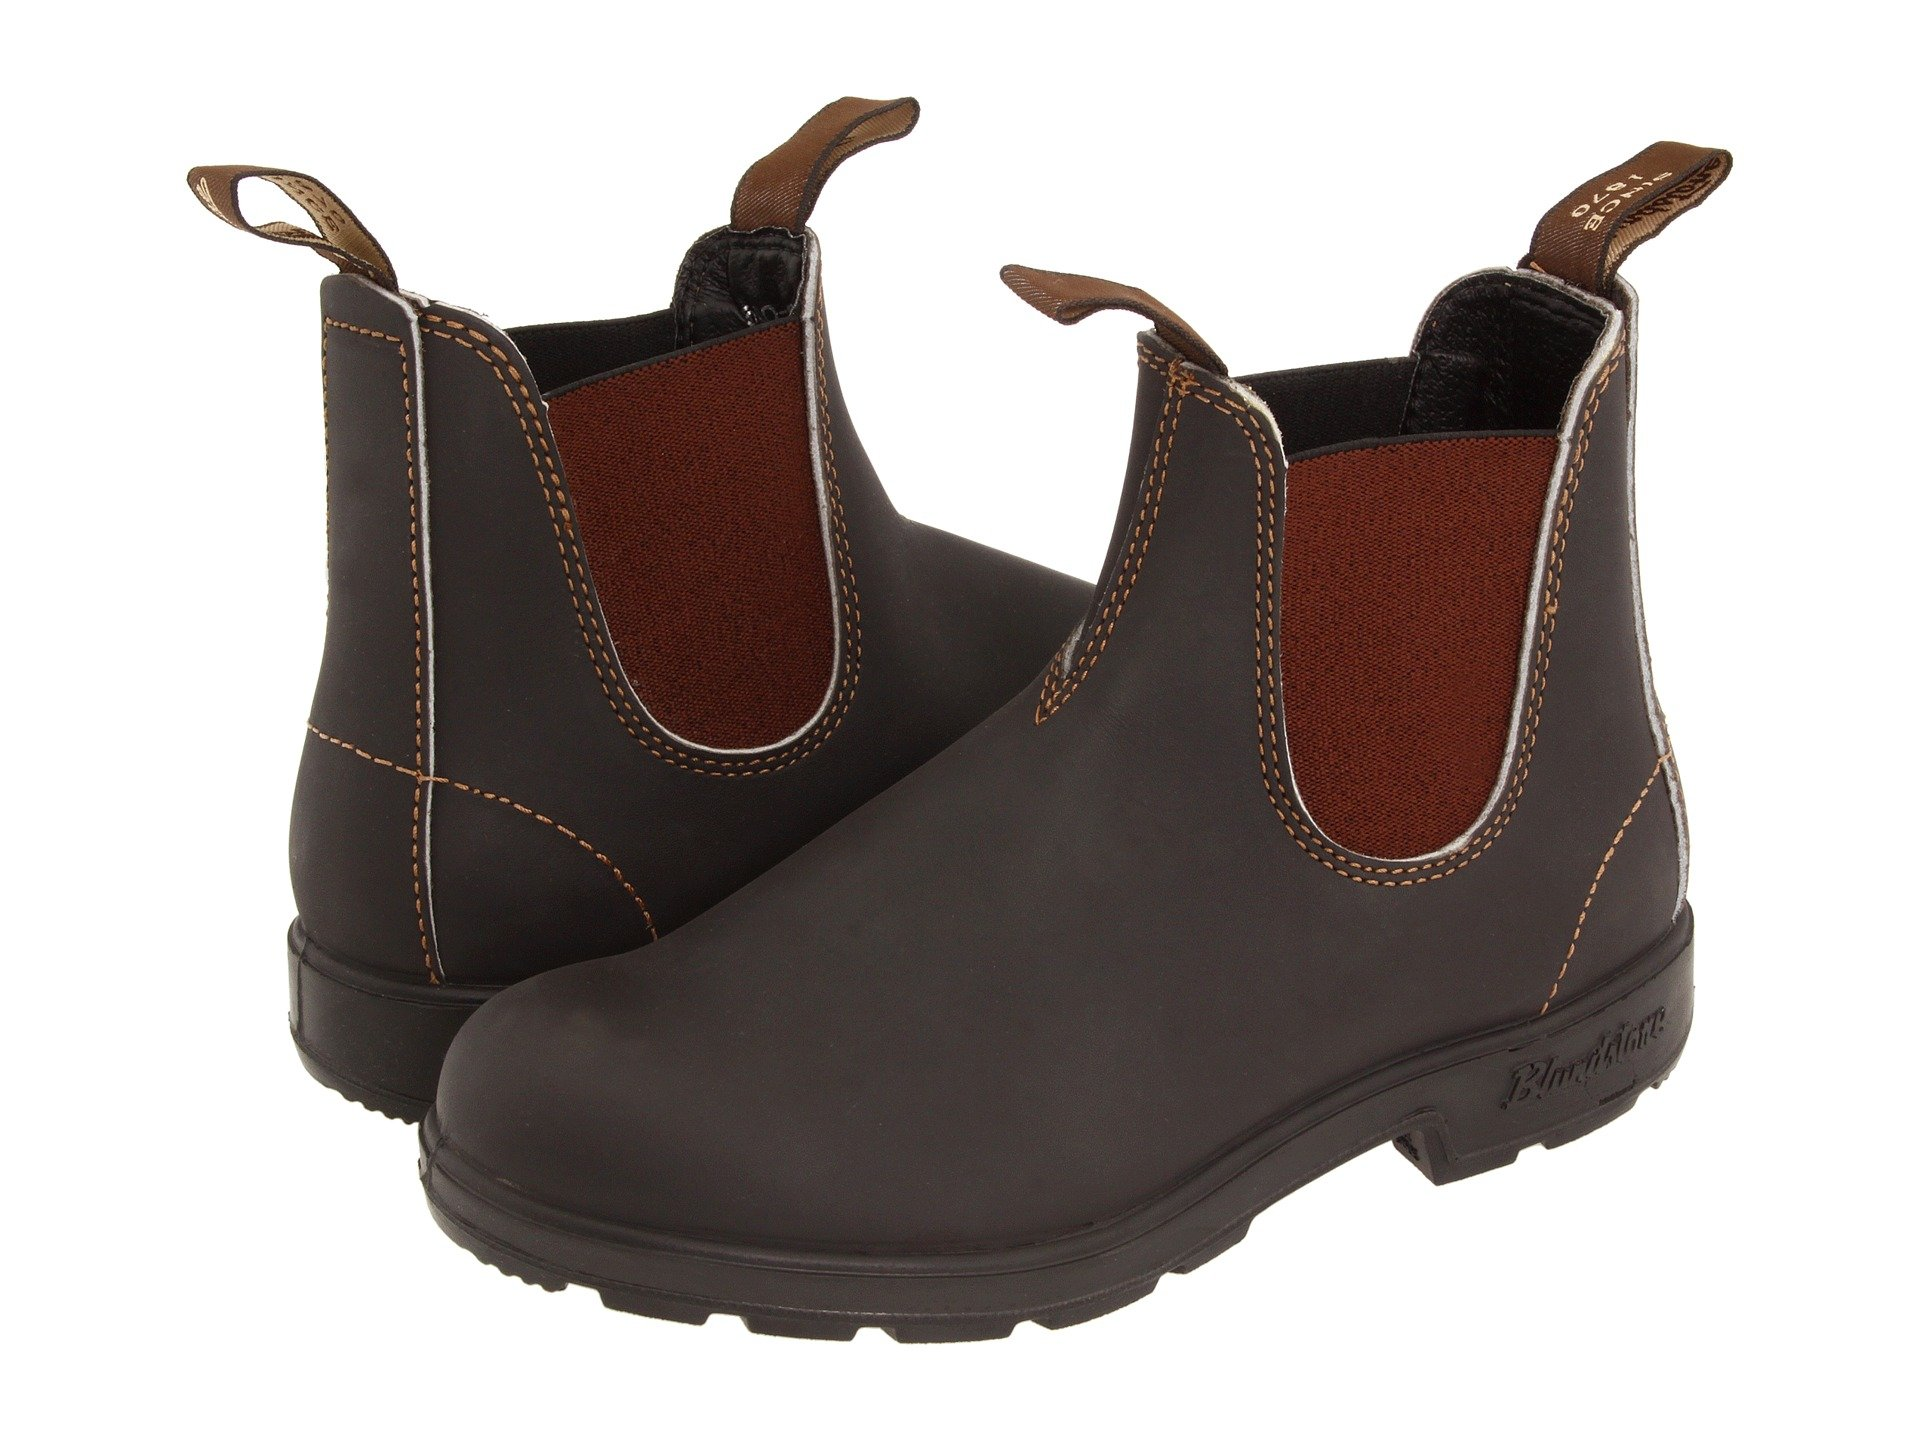 24c1d66532e9 Women s Blundstone Boots + FREE SHIPPING